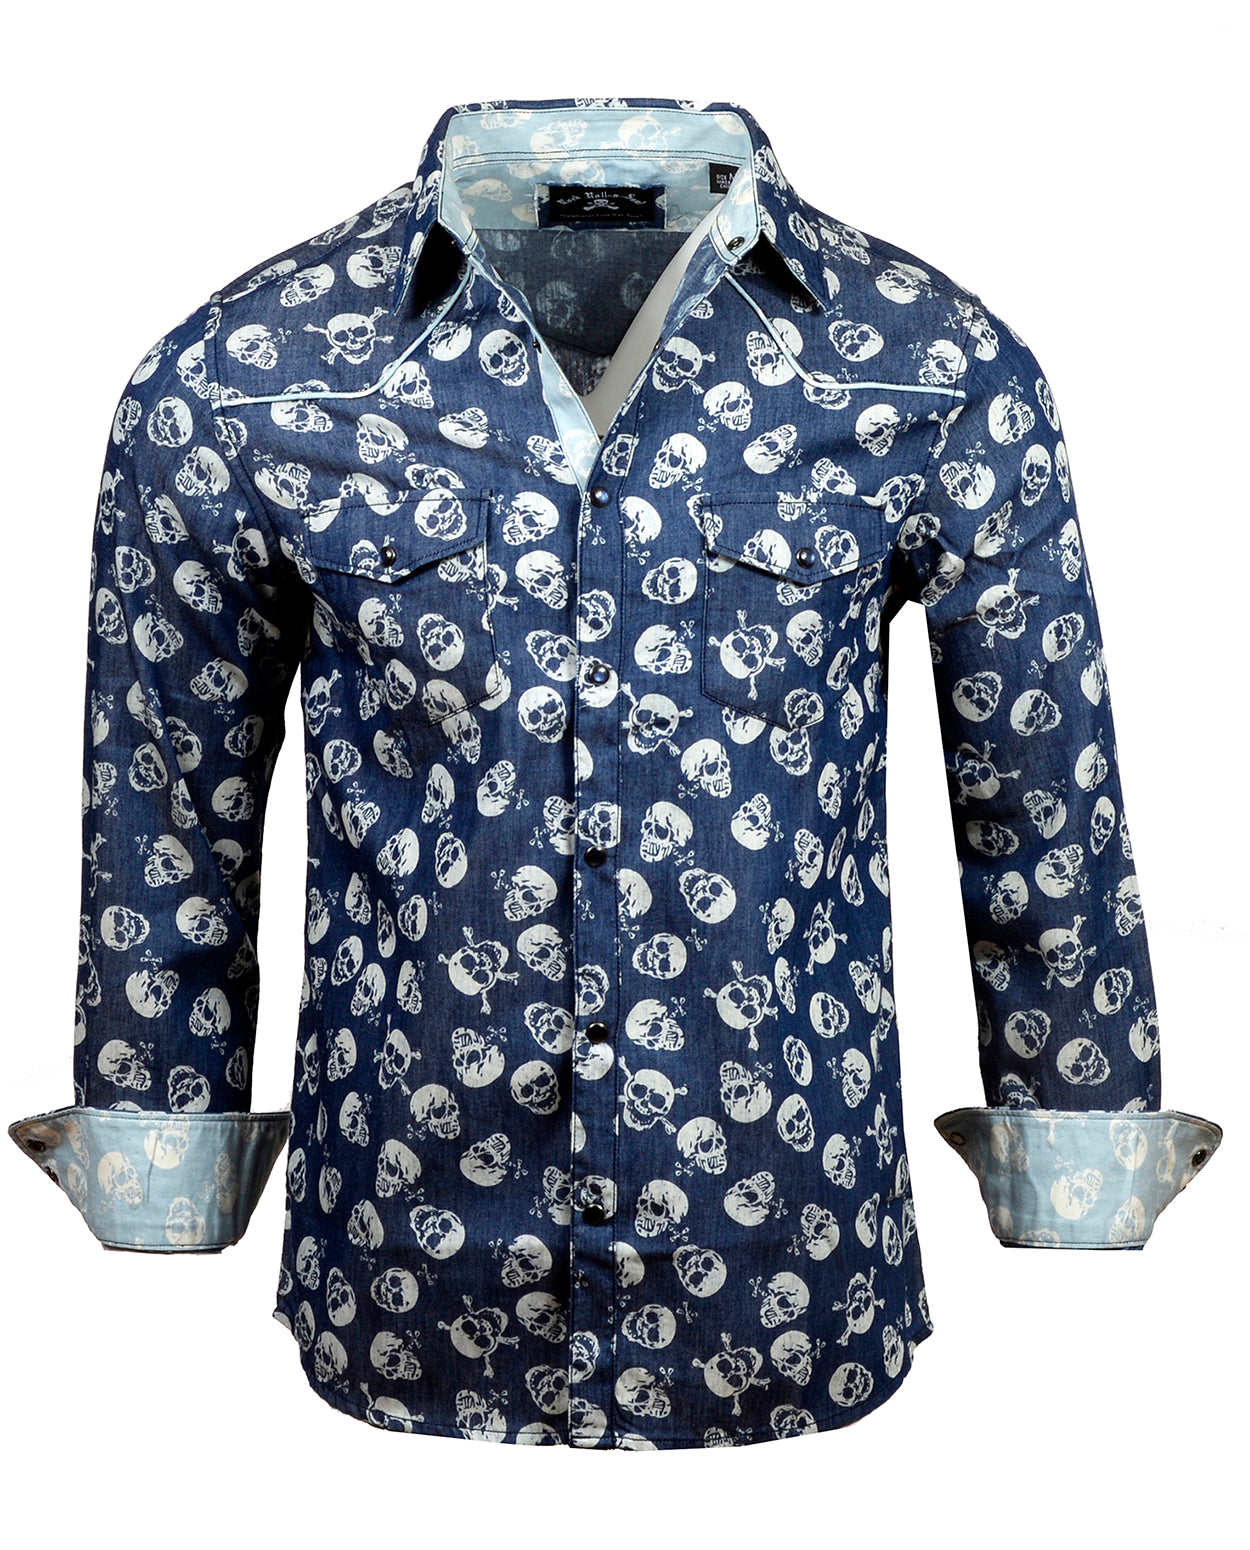 Men's Casual Fashion Button Up Shirt - Heathens by Rock Roll n Soul